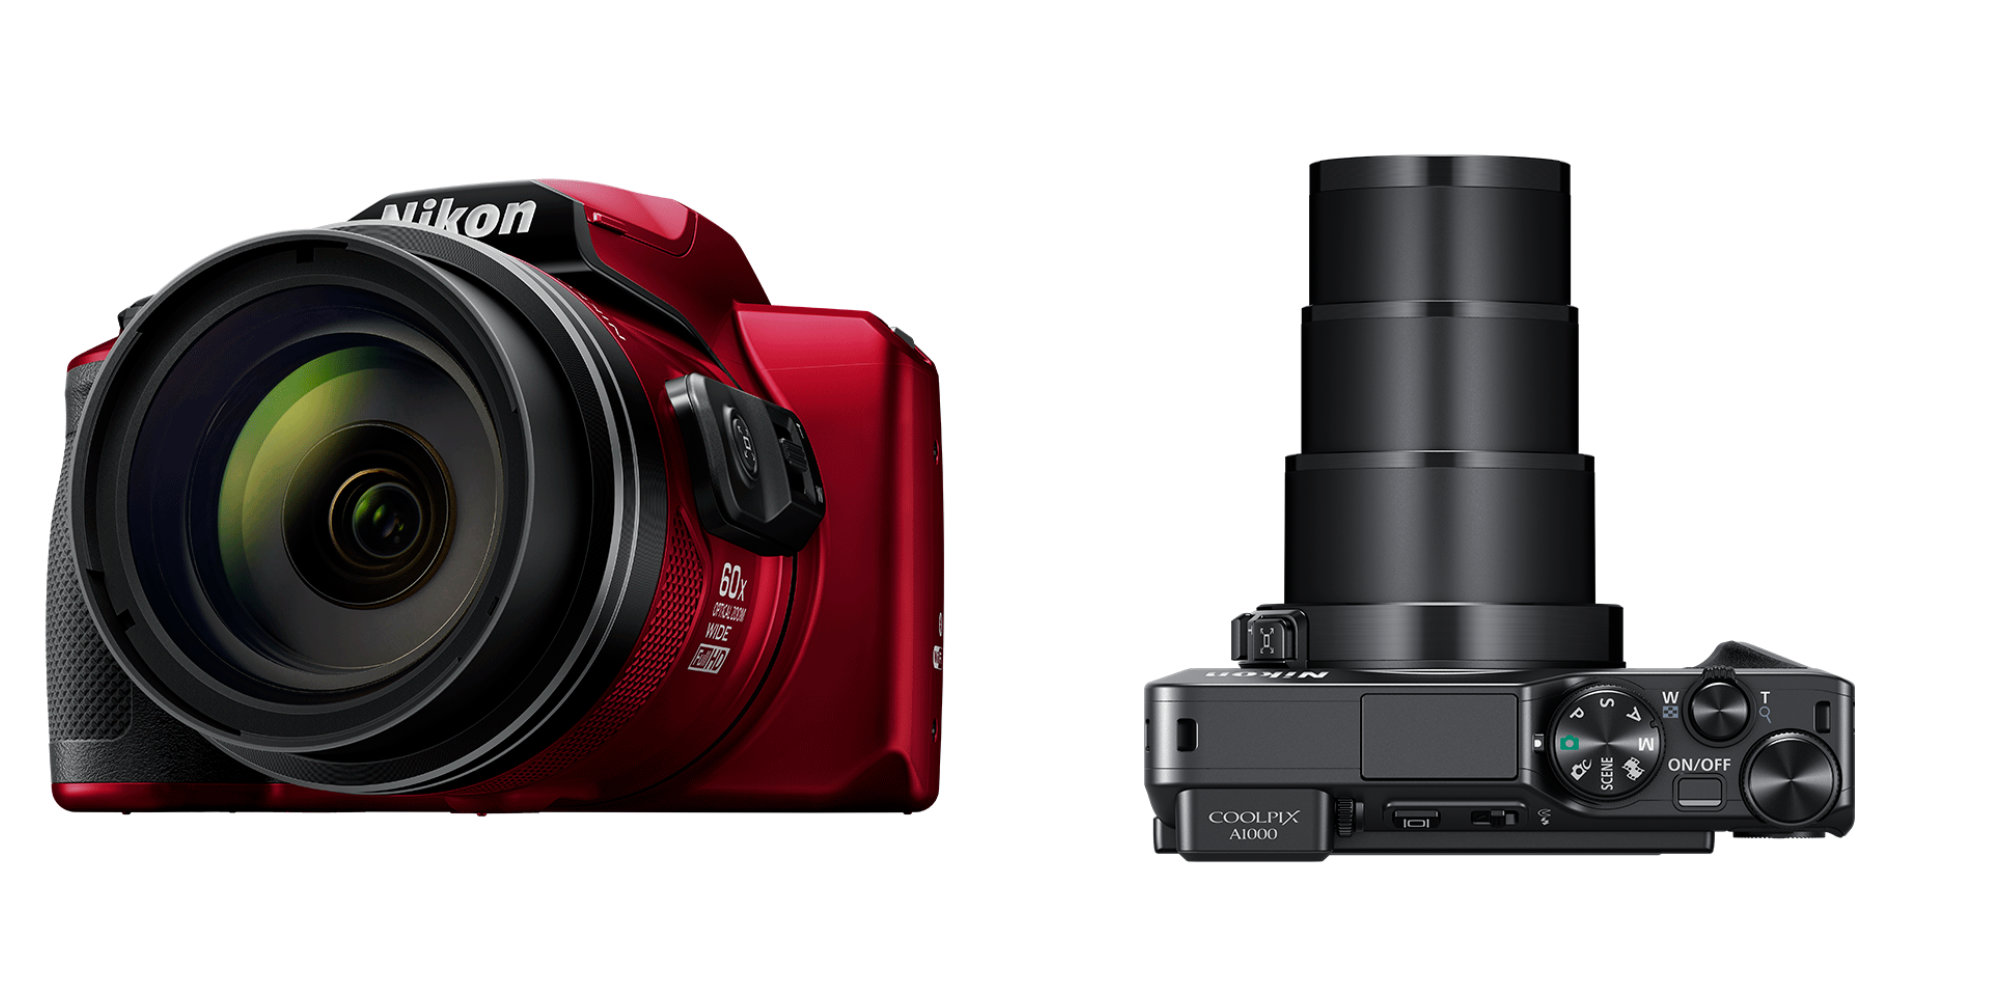 Nikon unveils two affordable COOLPIX Super-Zoom Cameras that reach places your iPhone cannot